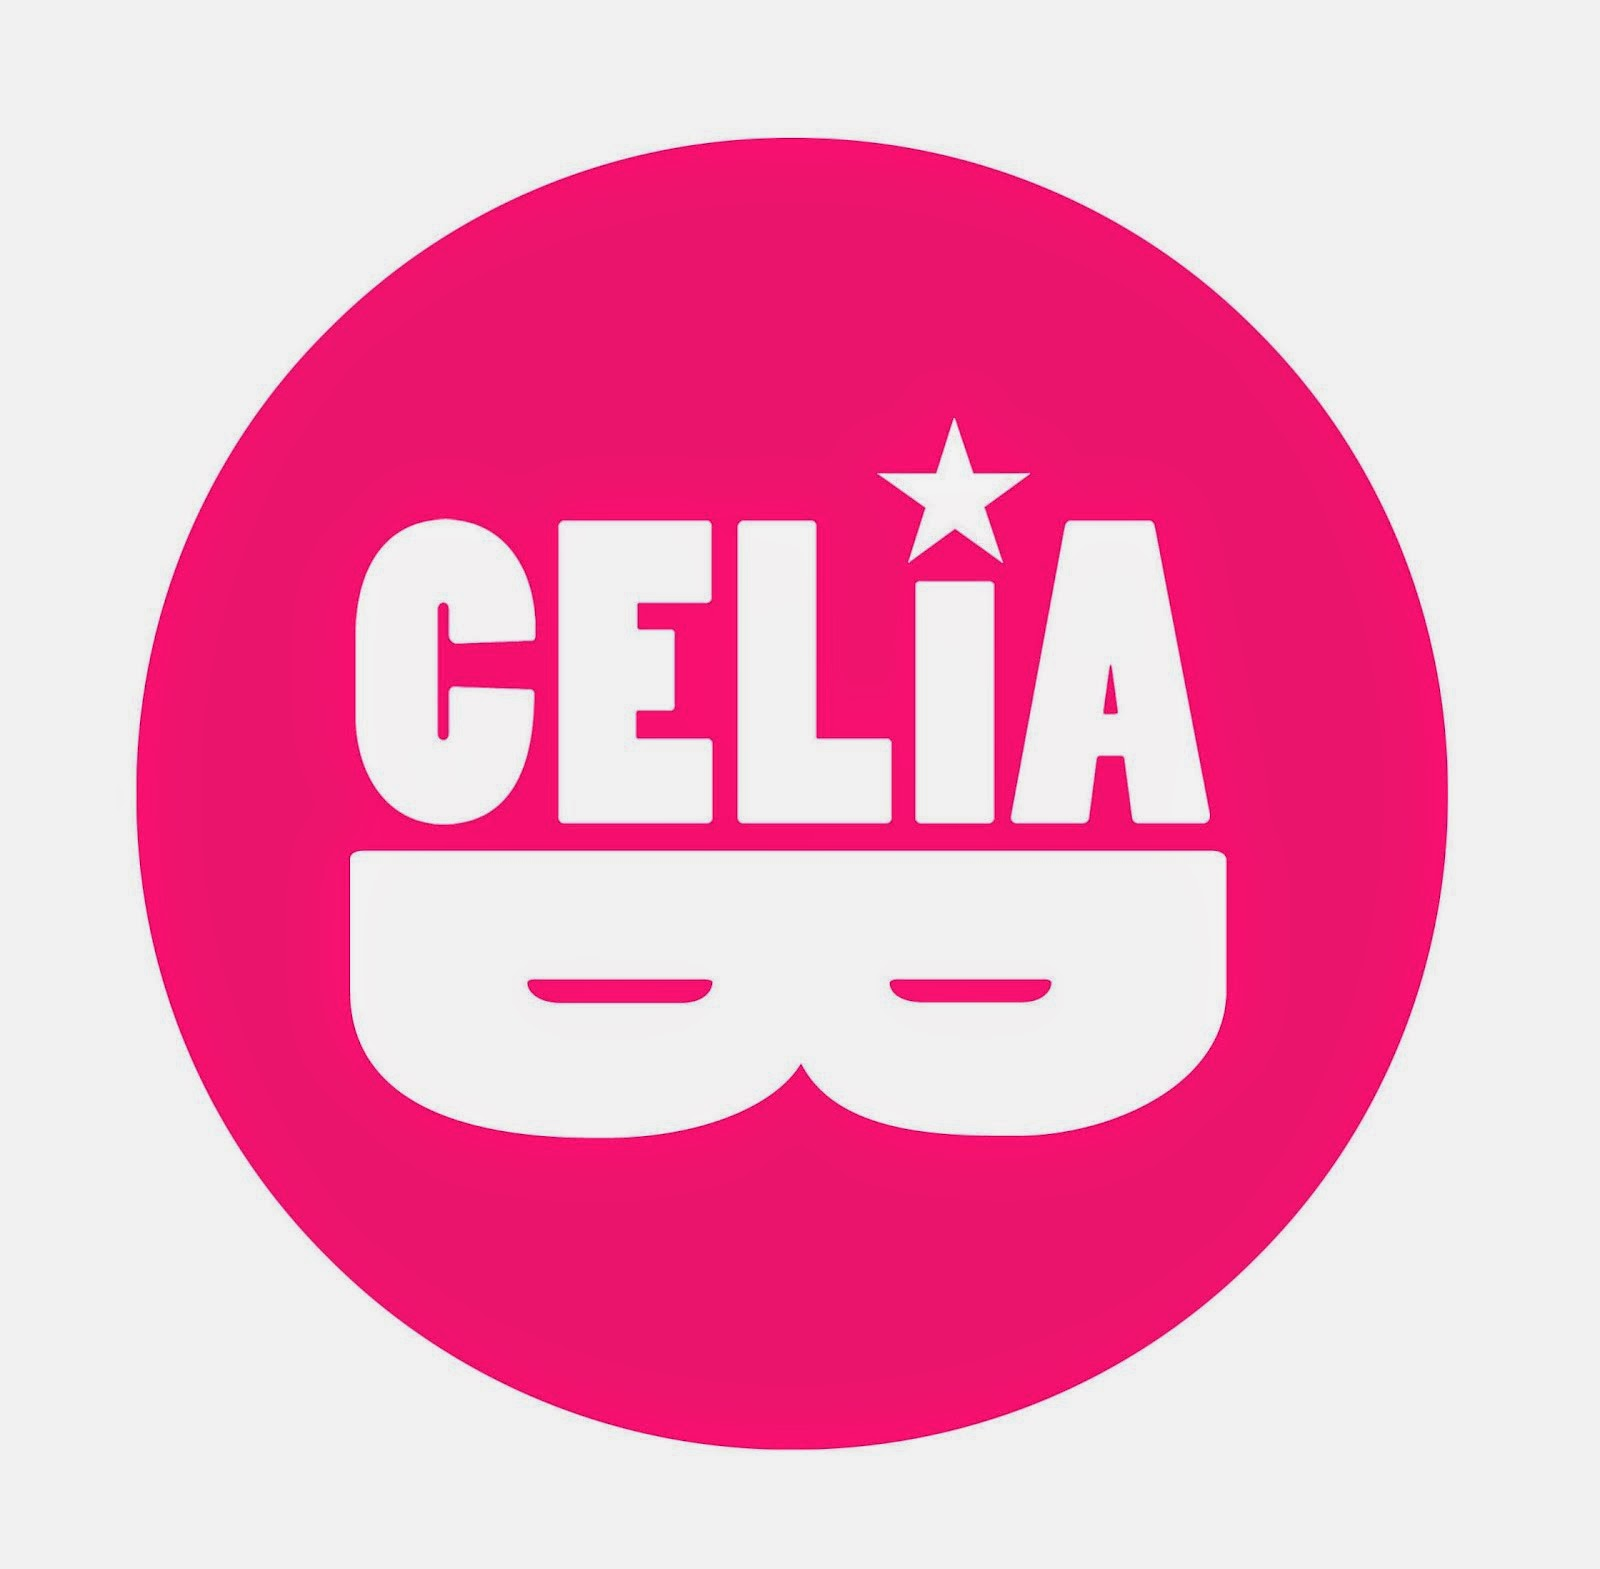 CeliaB Website